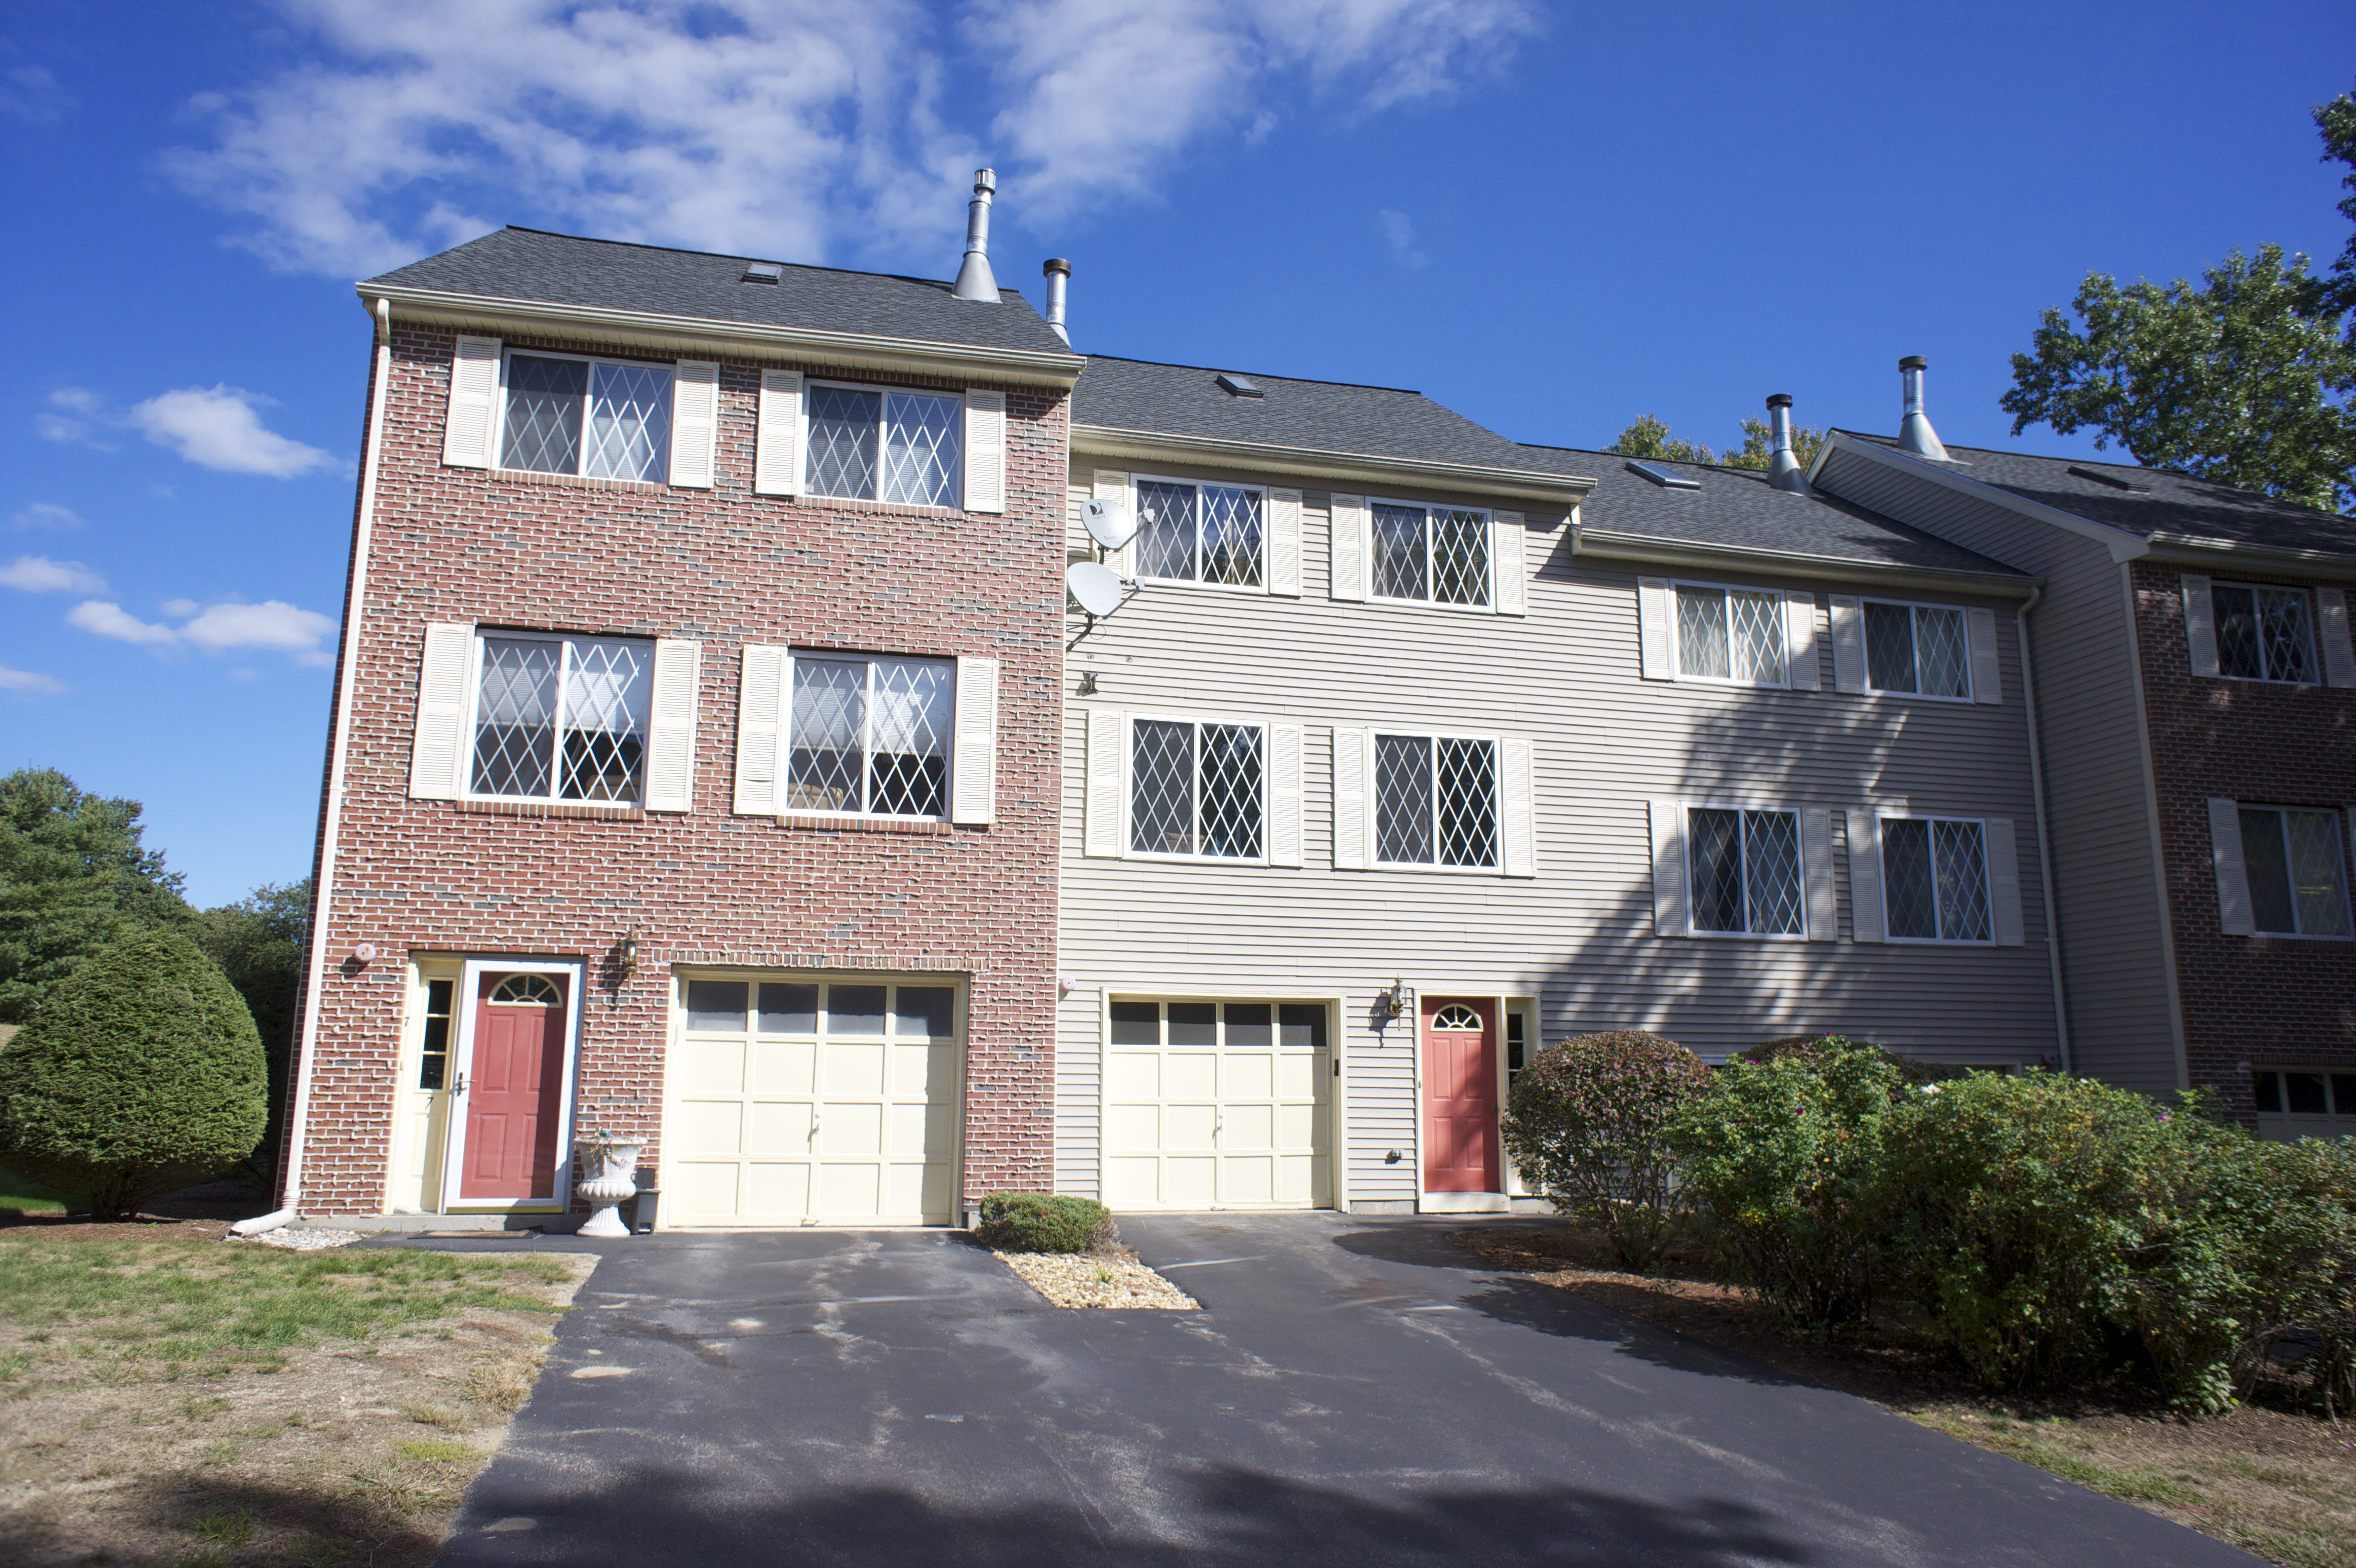 Condos for sale in Nashua NH